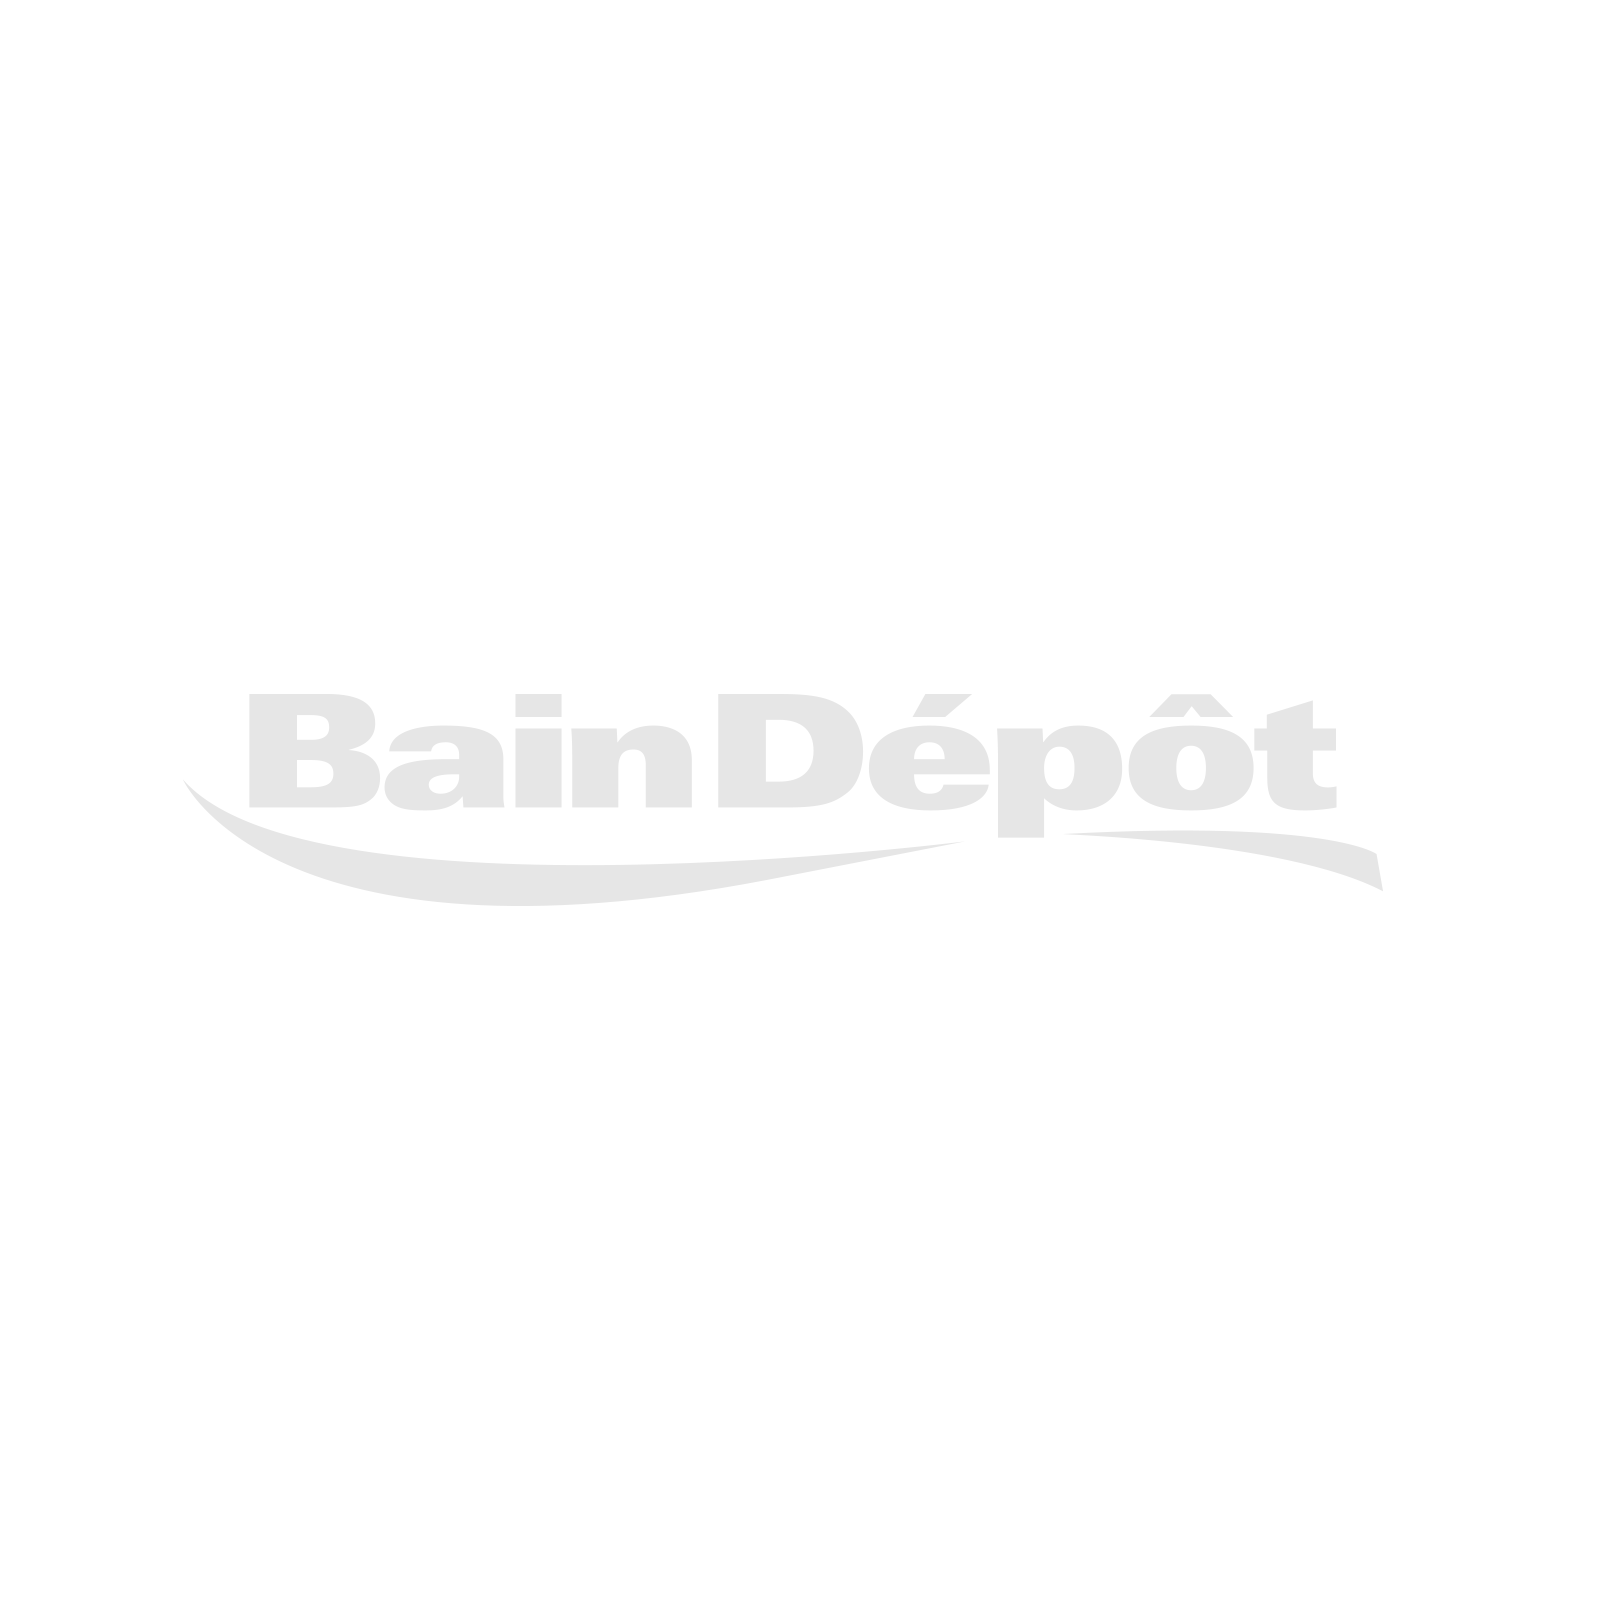 "42"" x 34"" Shower kit with pivot door, left side base and 12"" x 24"" white wall tiles"